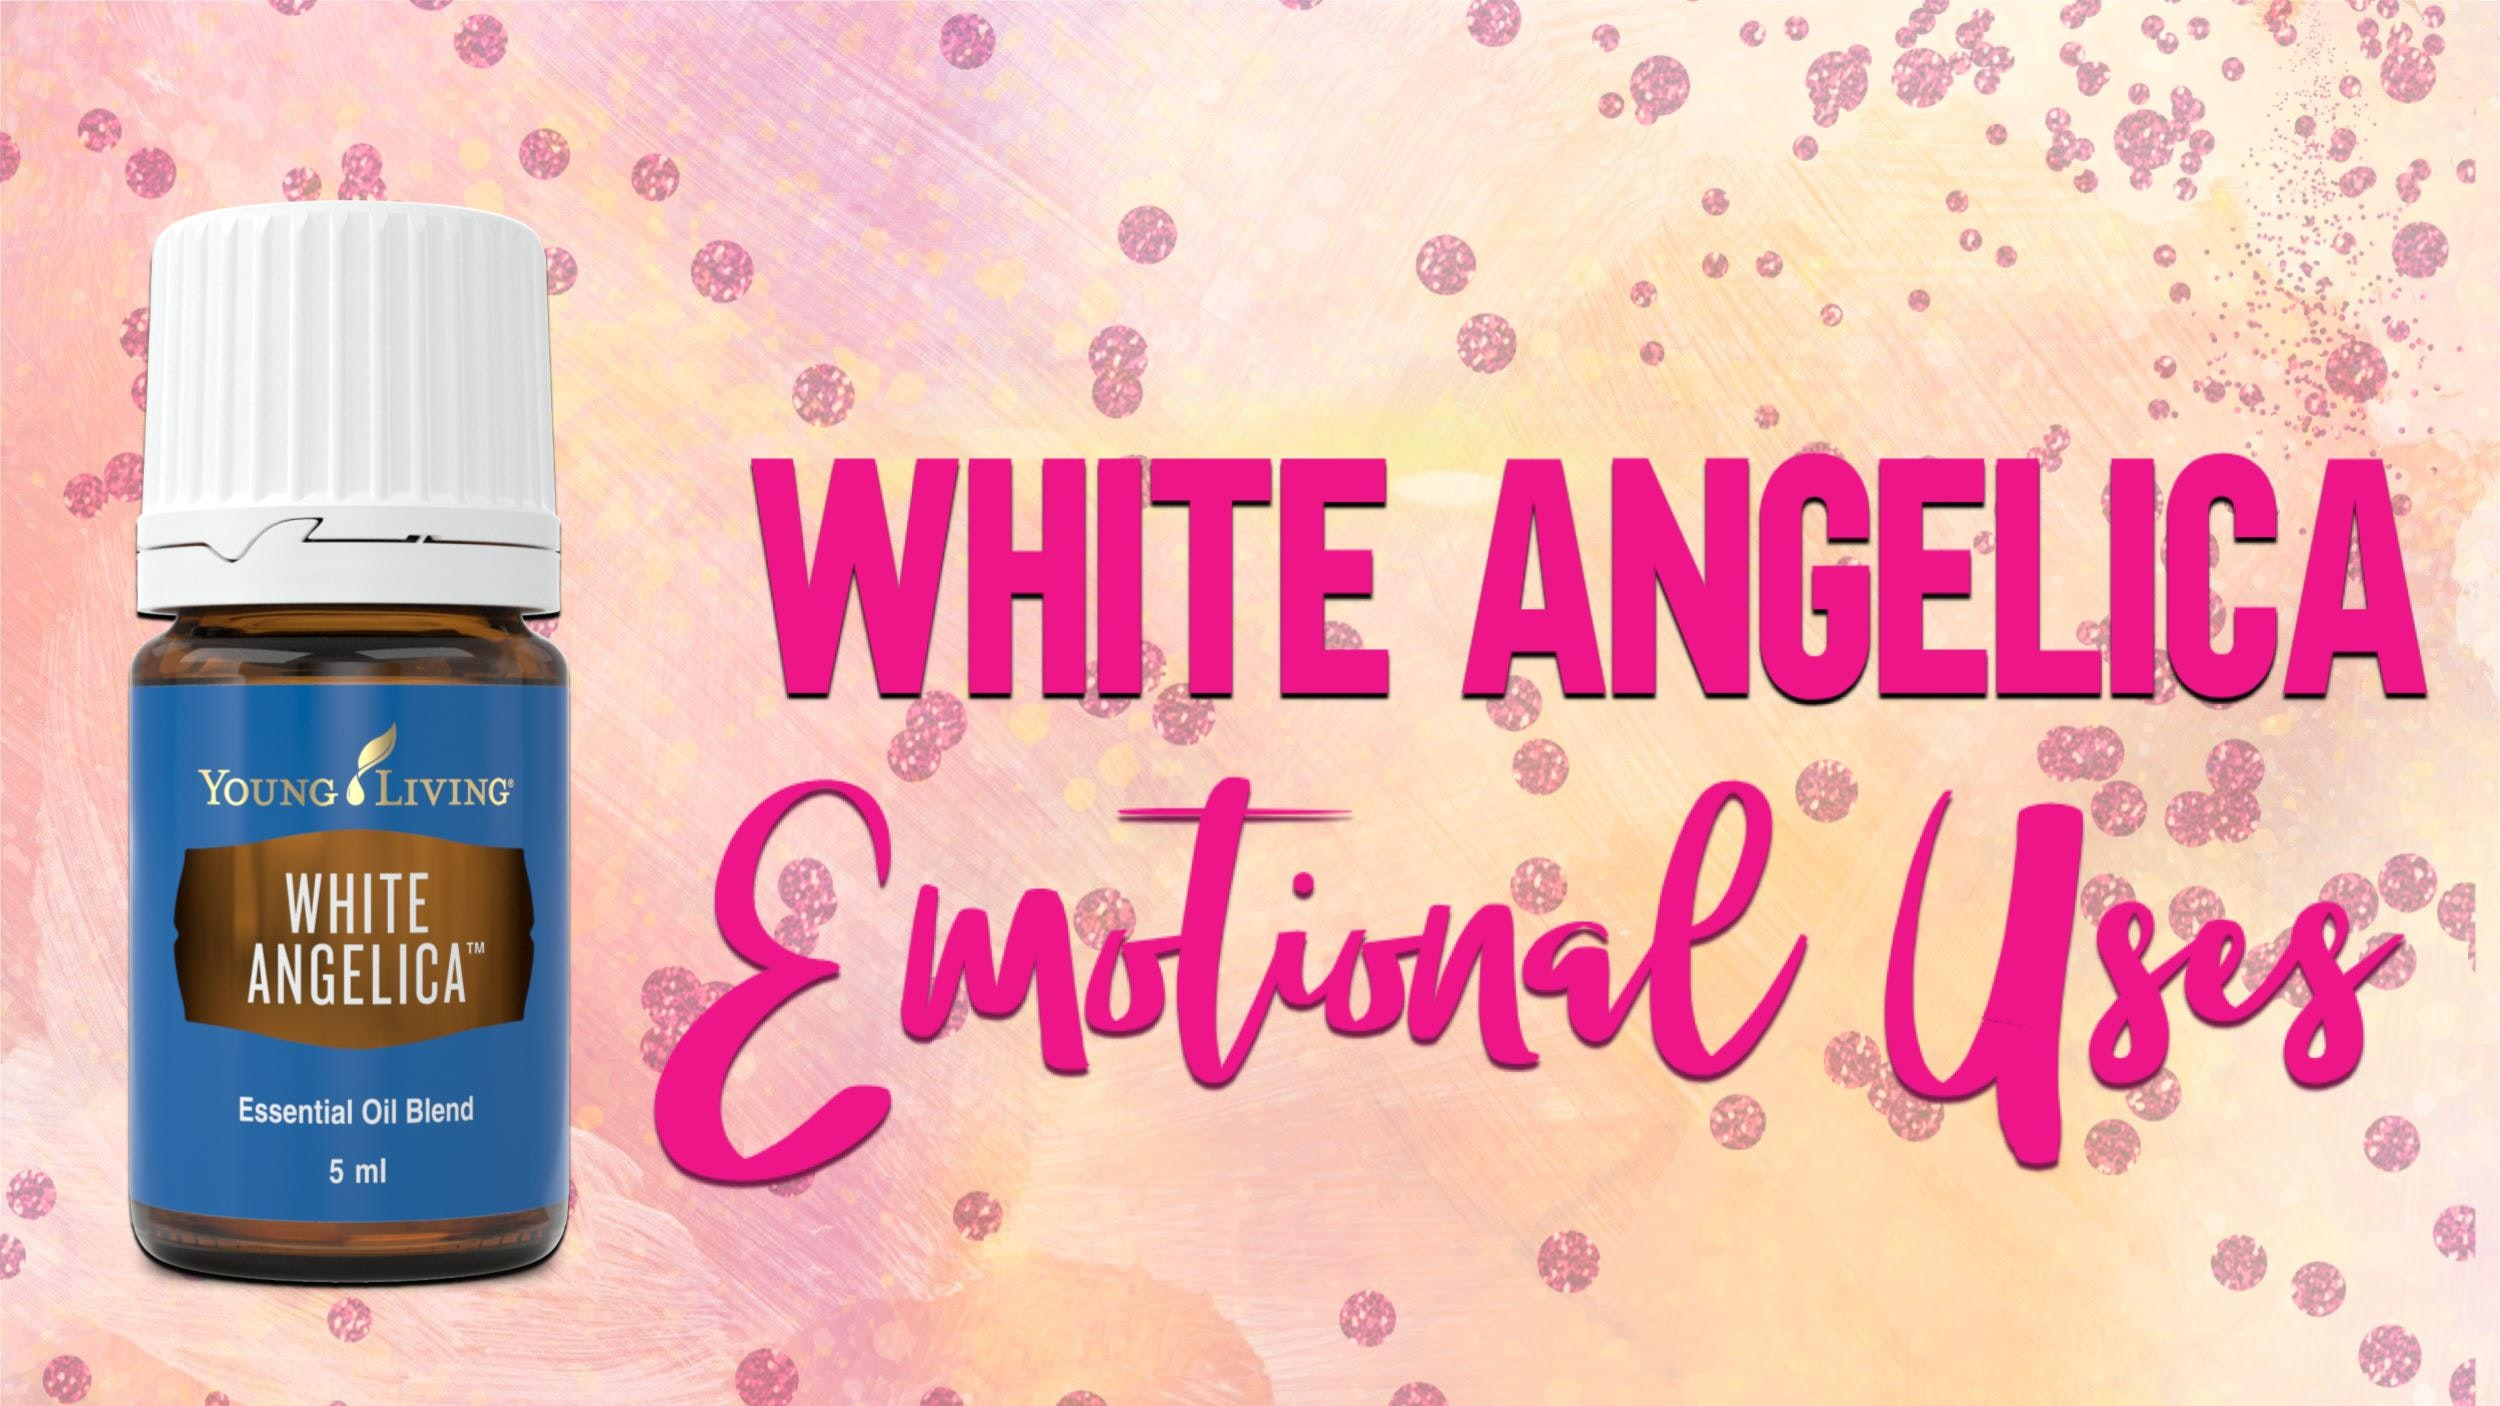 White Angelica For Emotions Essential Oil Blends Sharonwild Tv